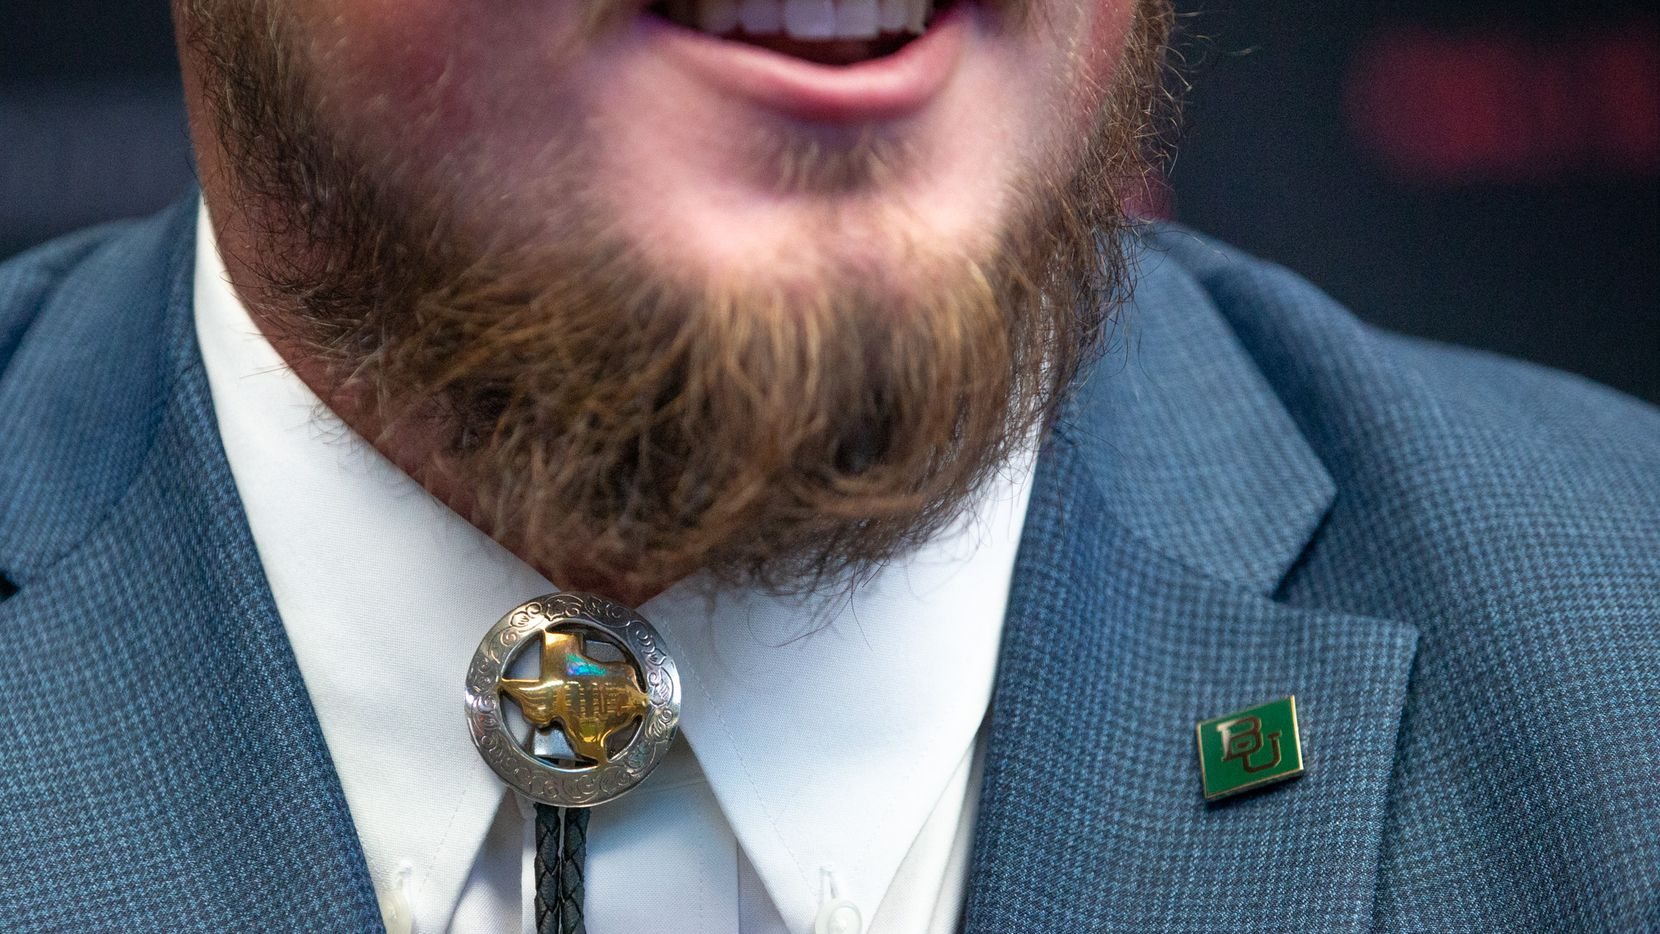 Sam Tecklenburg, an offensive lineman for Baylor, wears a bolo tie during the Big 12 Conference Media Days event at the AT&T Stadium in Arlington on July 16, 2019. He bought it on eBay for a few dollars after he saw a person wearing one at a wedding he attended last year, he said.